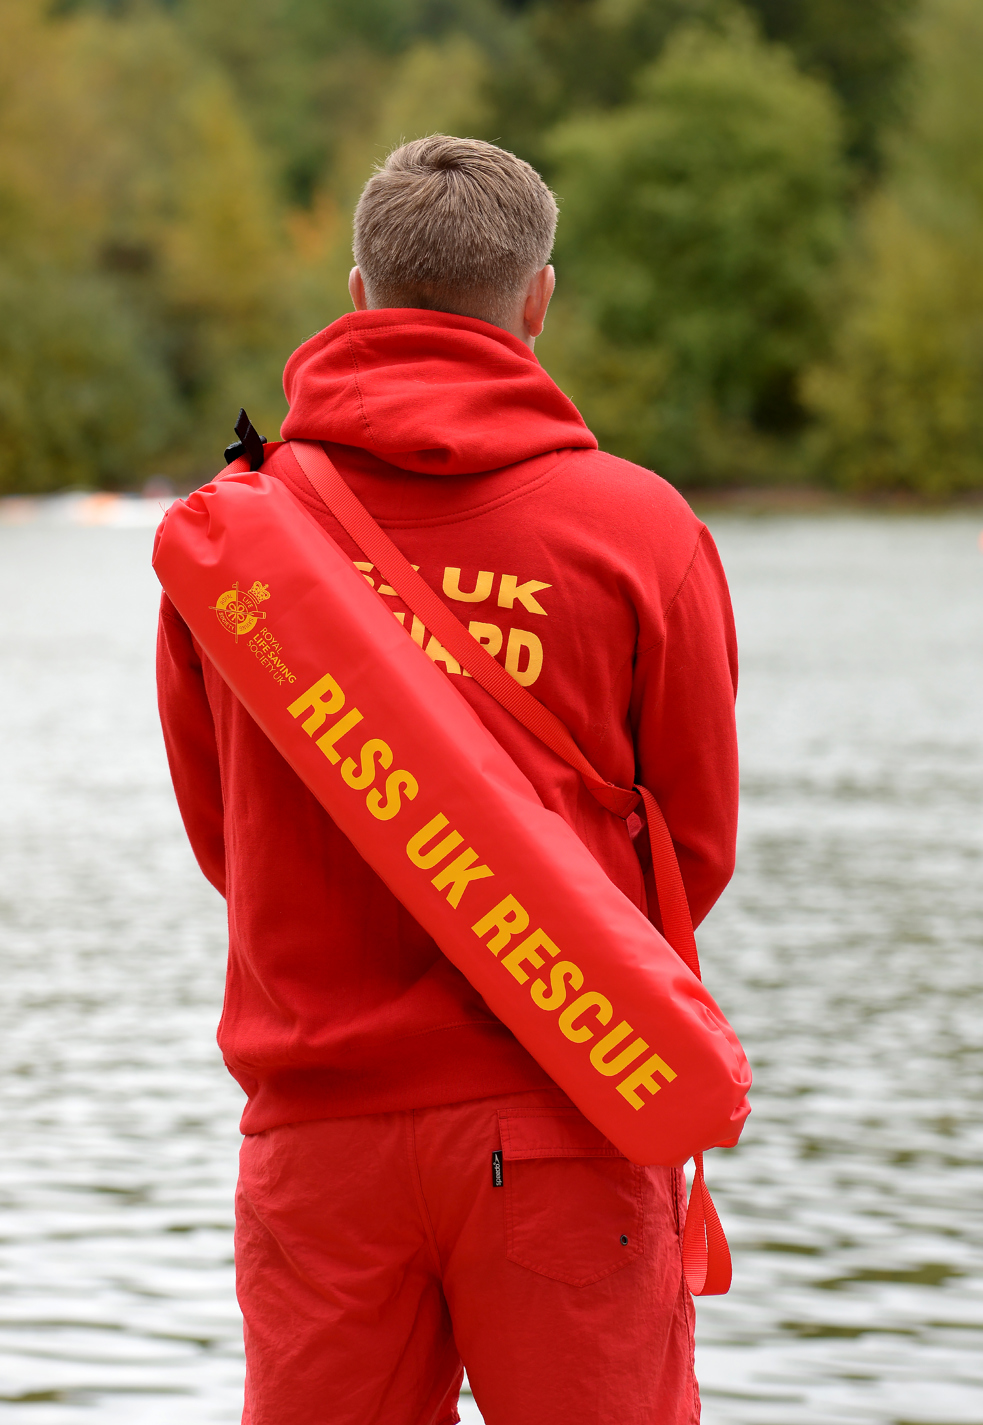 ee4bb7c32642 Introduction to the RLSS UK Open Water Lifeguard Qualifications